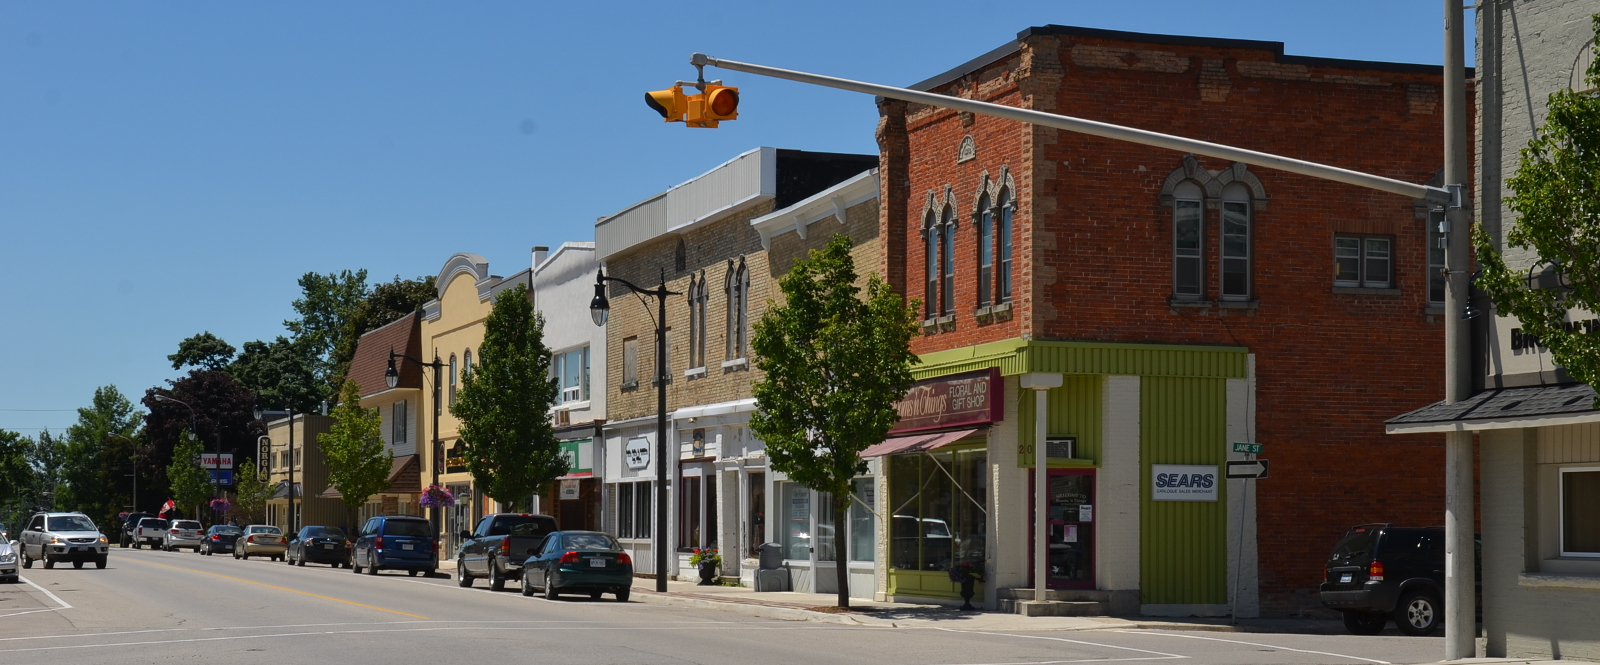 photo of downtown Palmerston